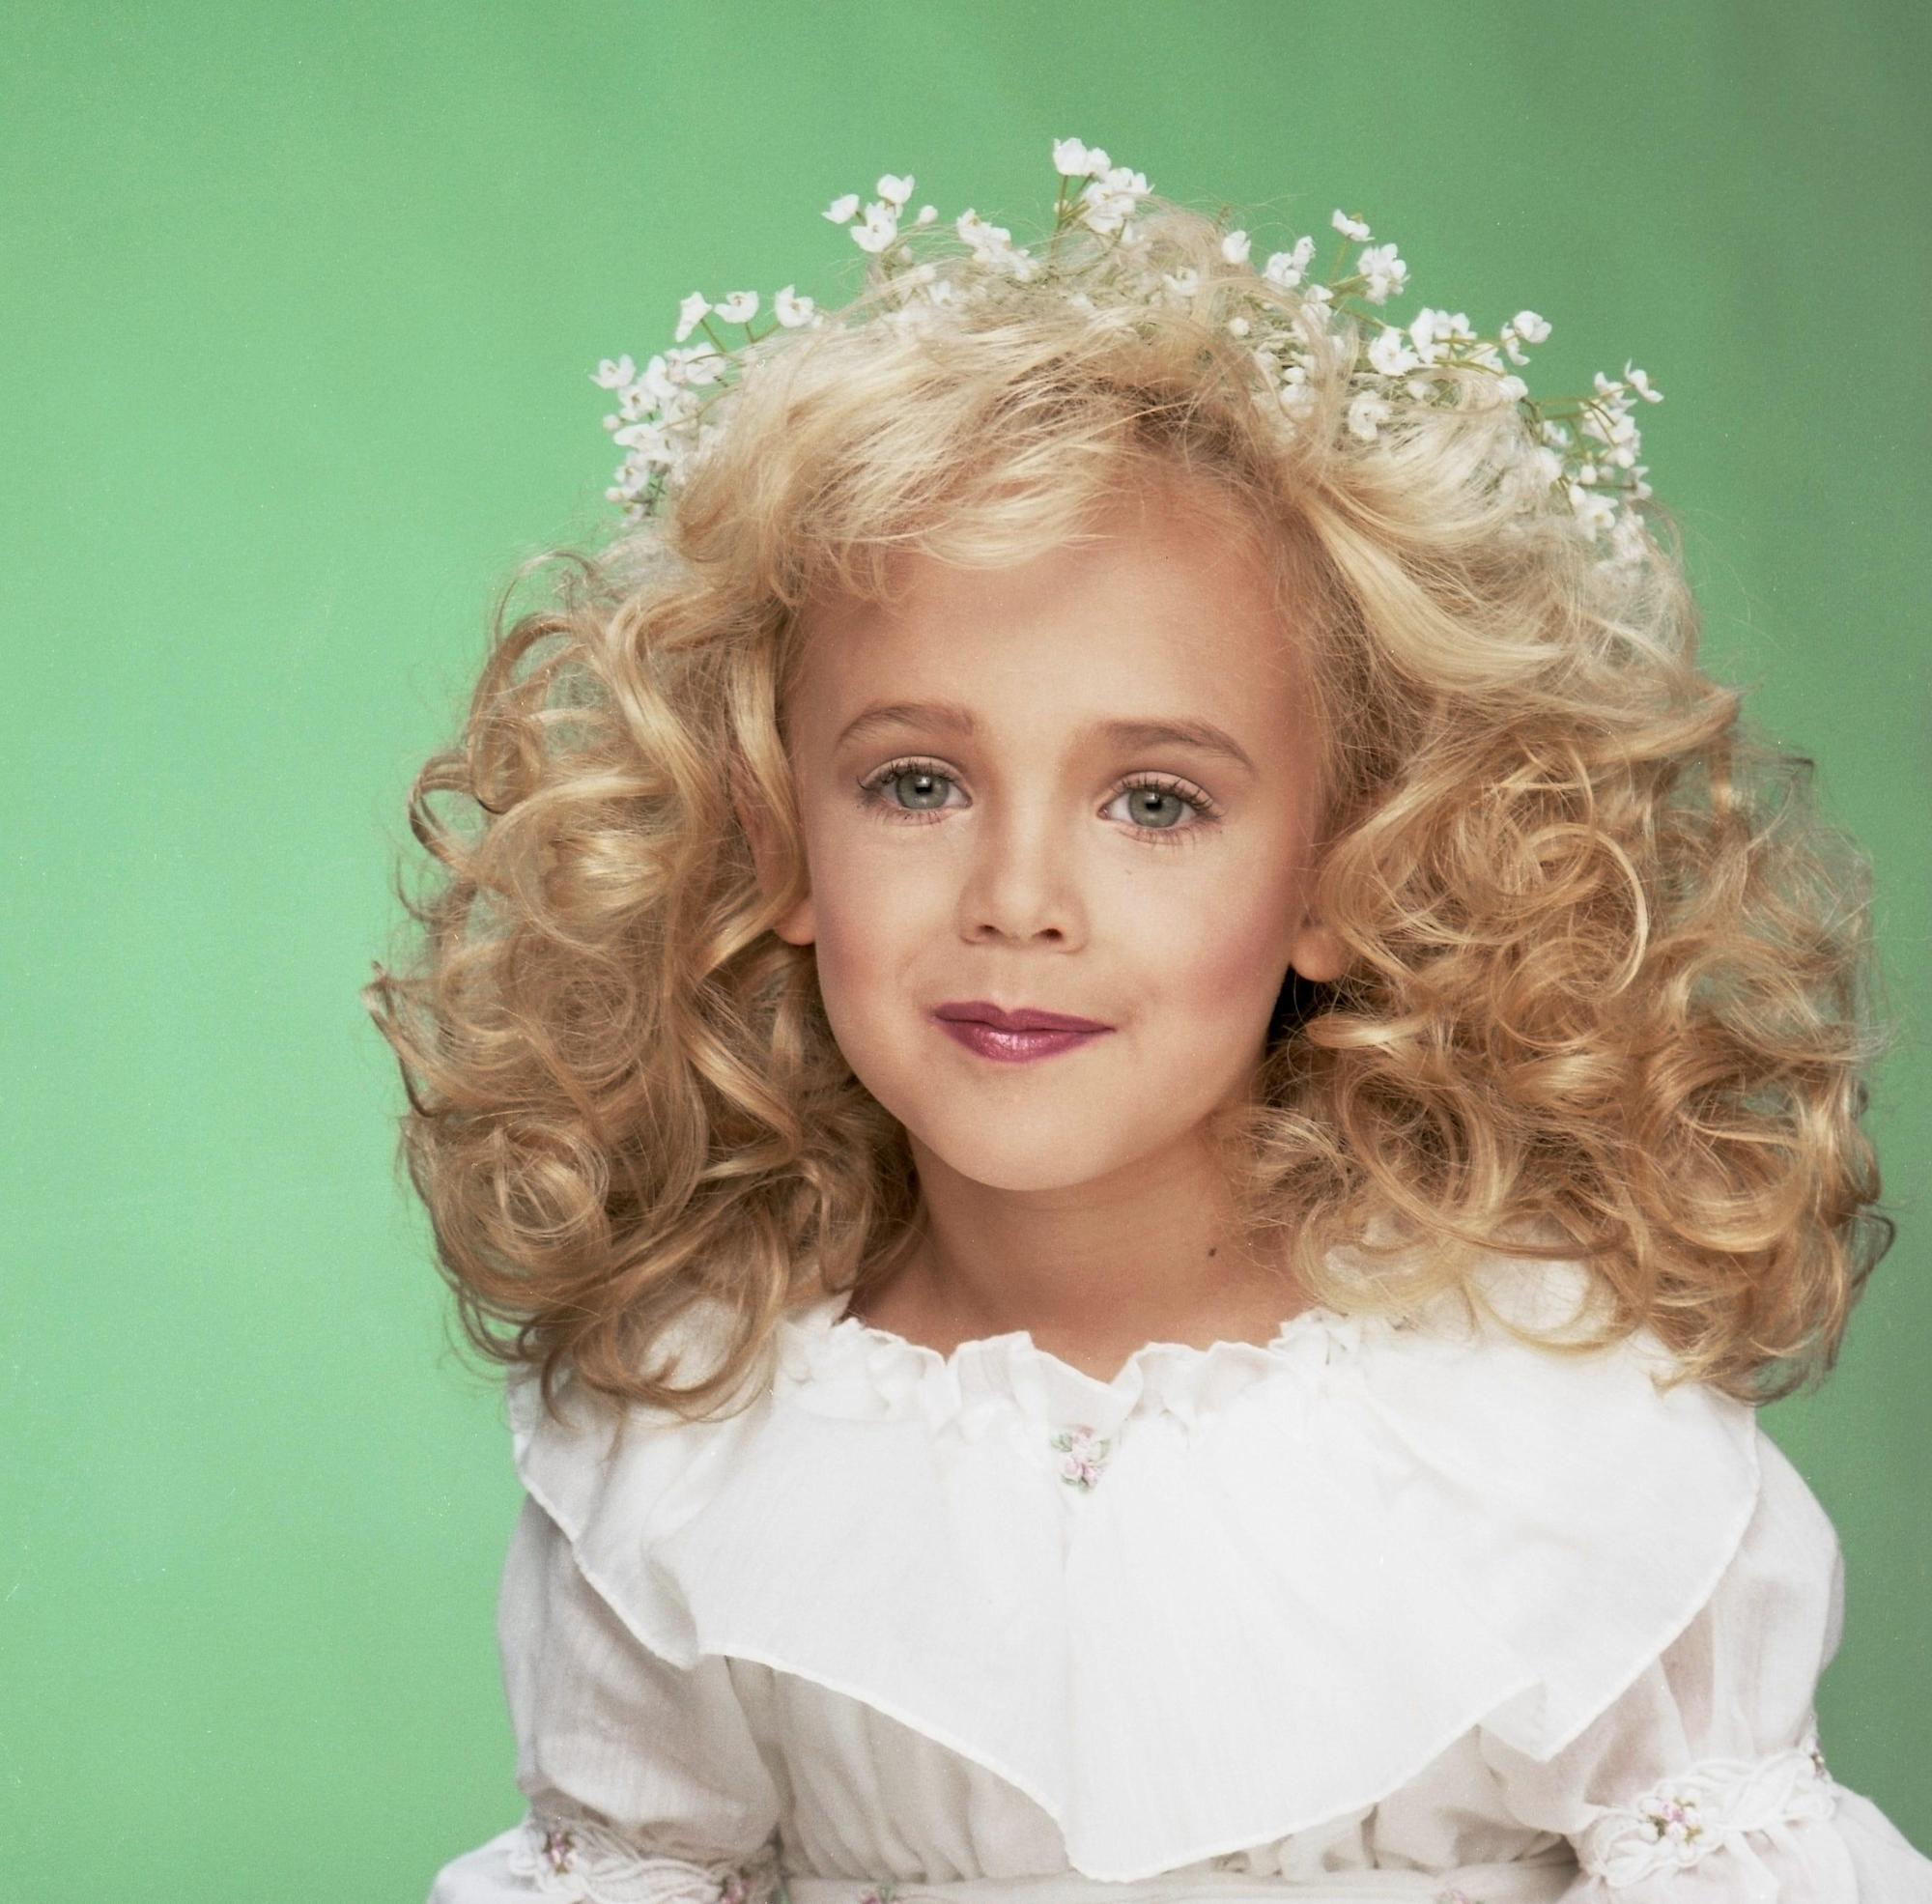 JonBenét Ramsey's family hopes new Discovery+ documentary will 'keep the case alive'